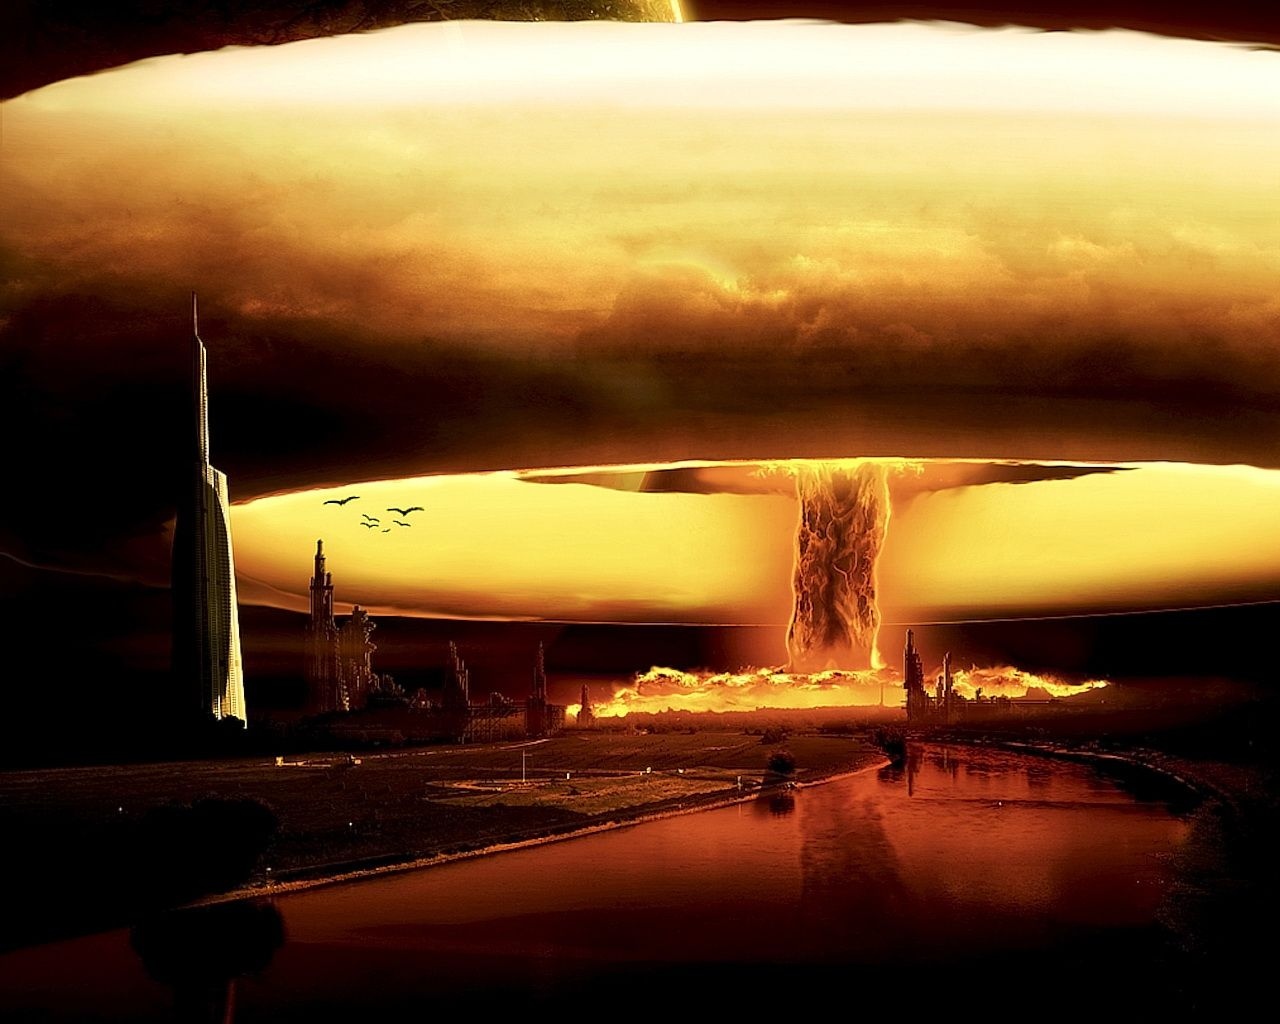 Atomic Bomb Wallpaper Nuclear Bomb Destroyer Of Worlds Weapon Of Mass Destruction